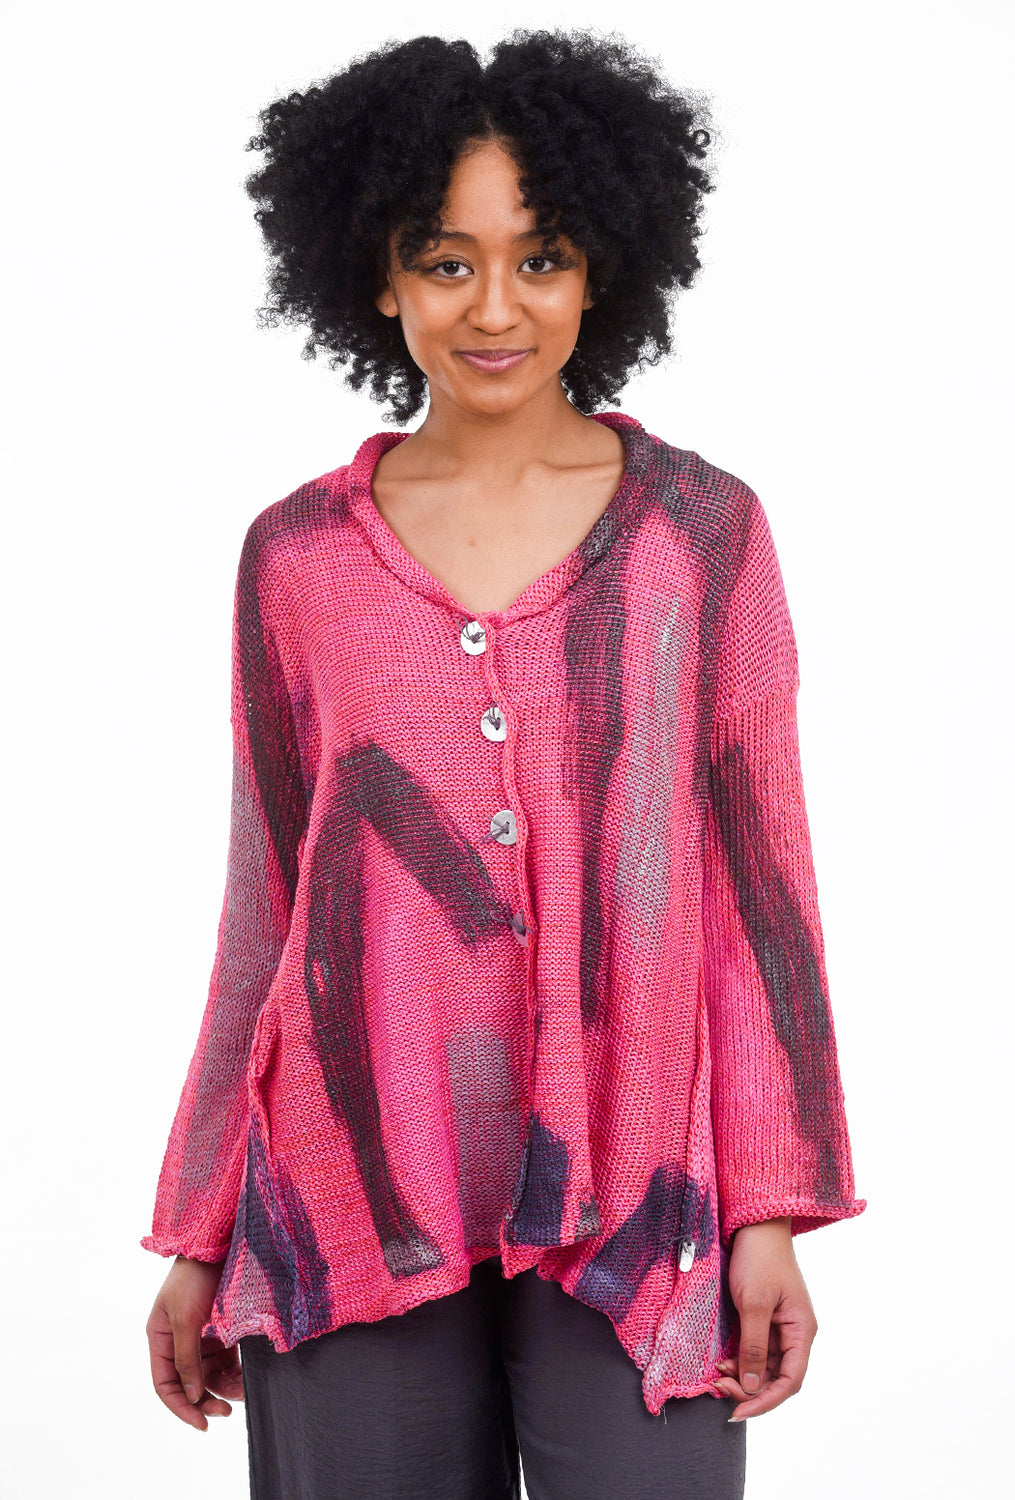 Skif International V Five-Button Cardie, Hot Pink Brush One Size Pink